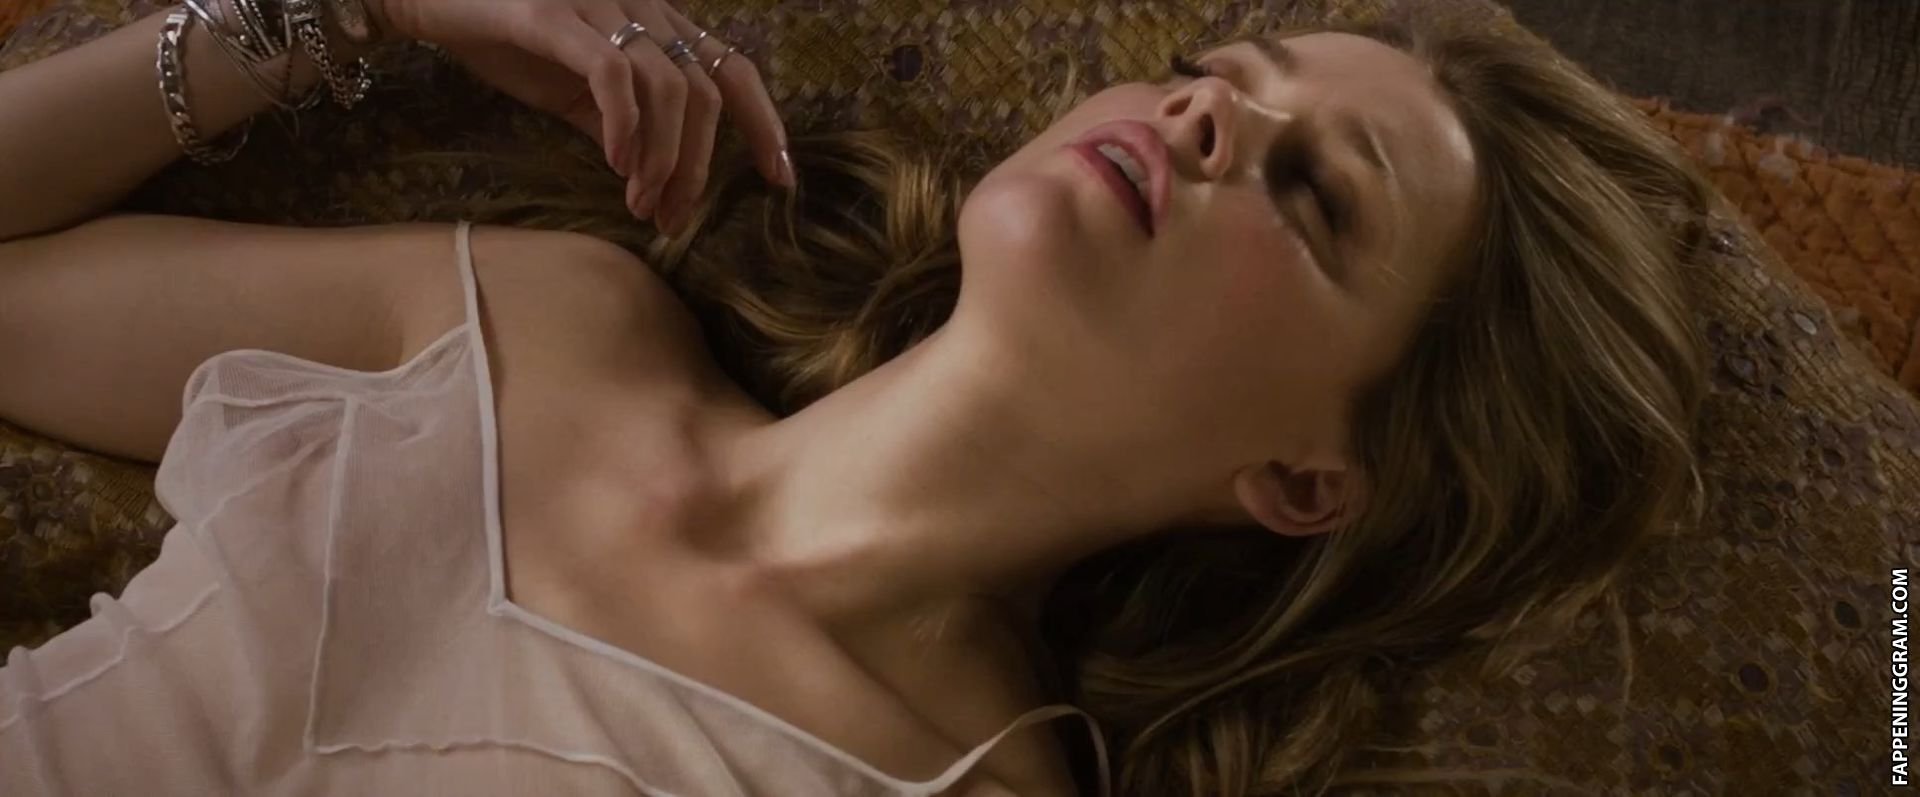 https://cdn.fappeninggram.com/photos/amber-heard/amber-heard-nude180.jpg